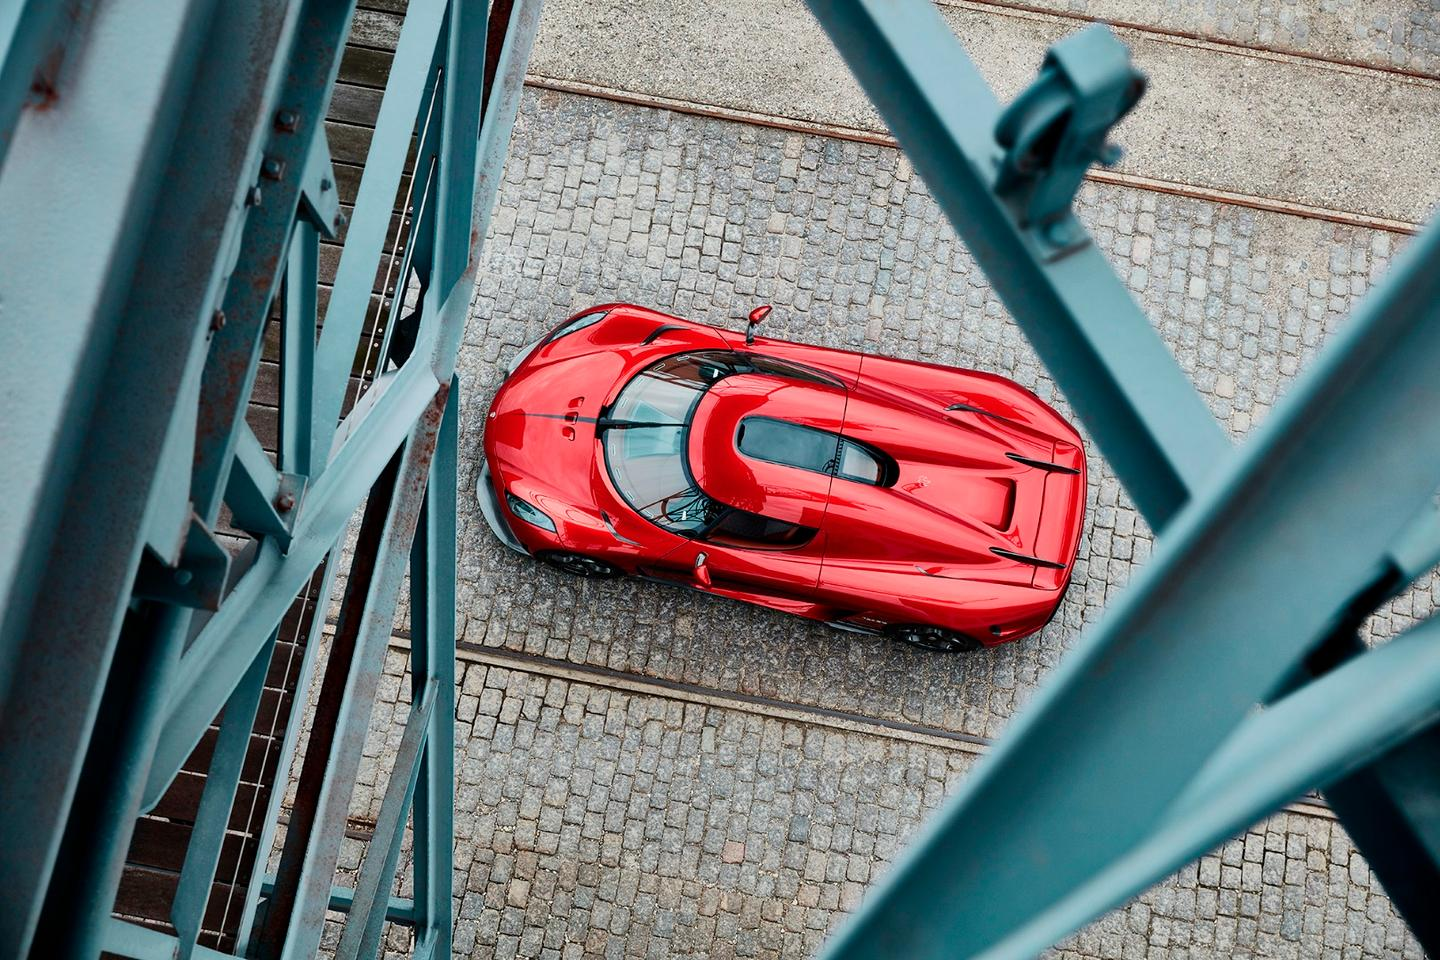 Meet the Koenigsegg Agera XS - First Agera RS in the US